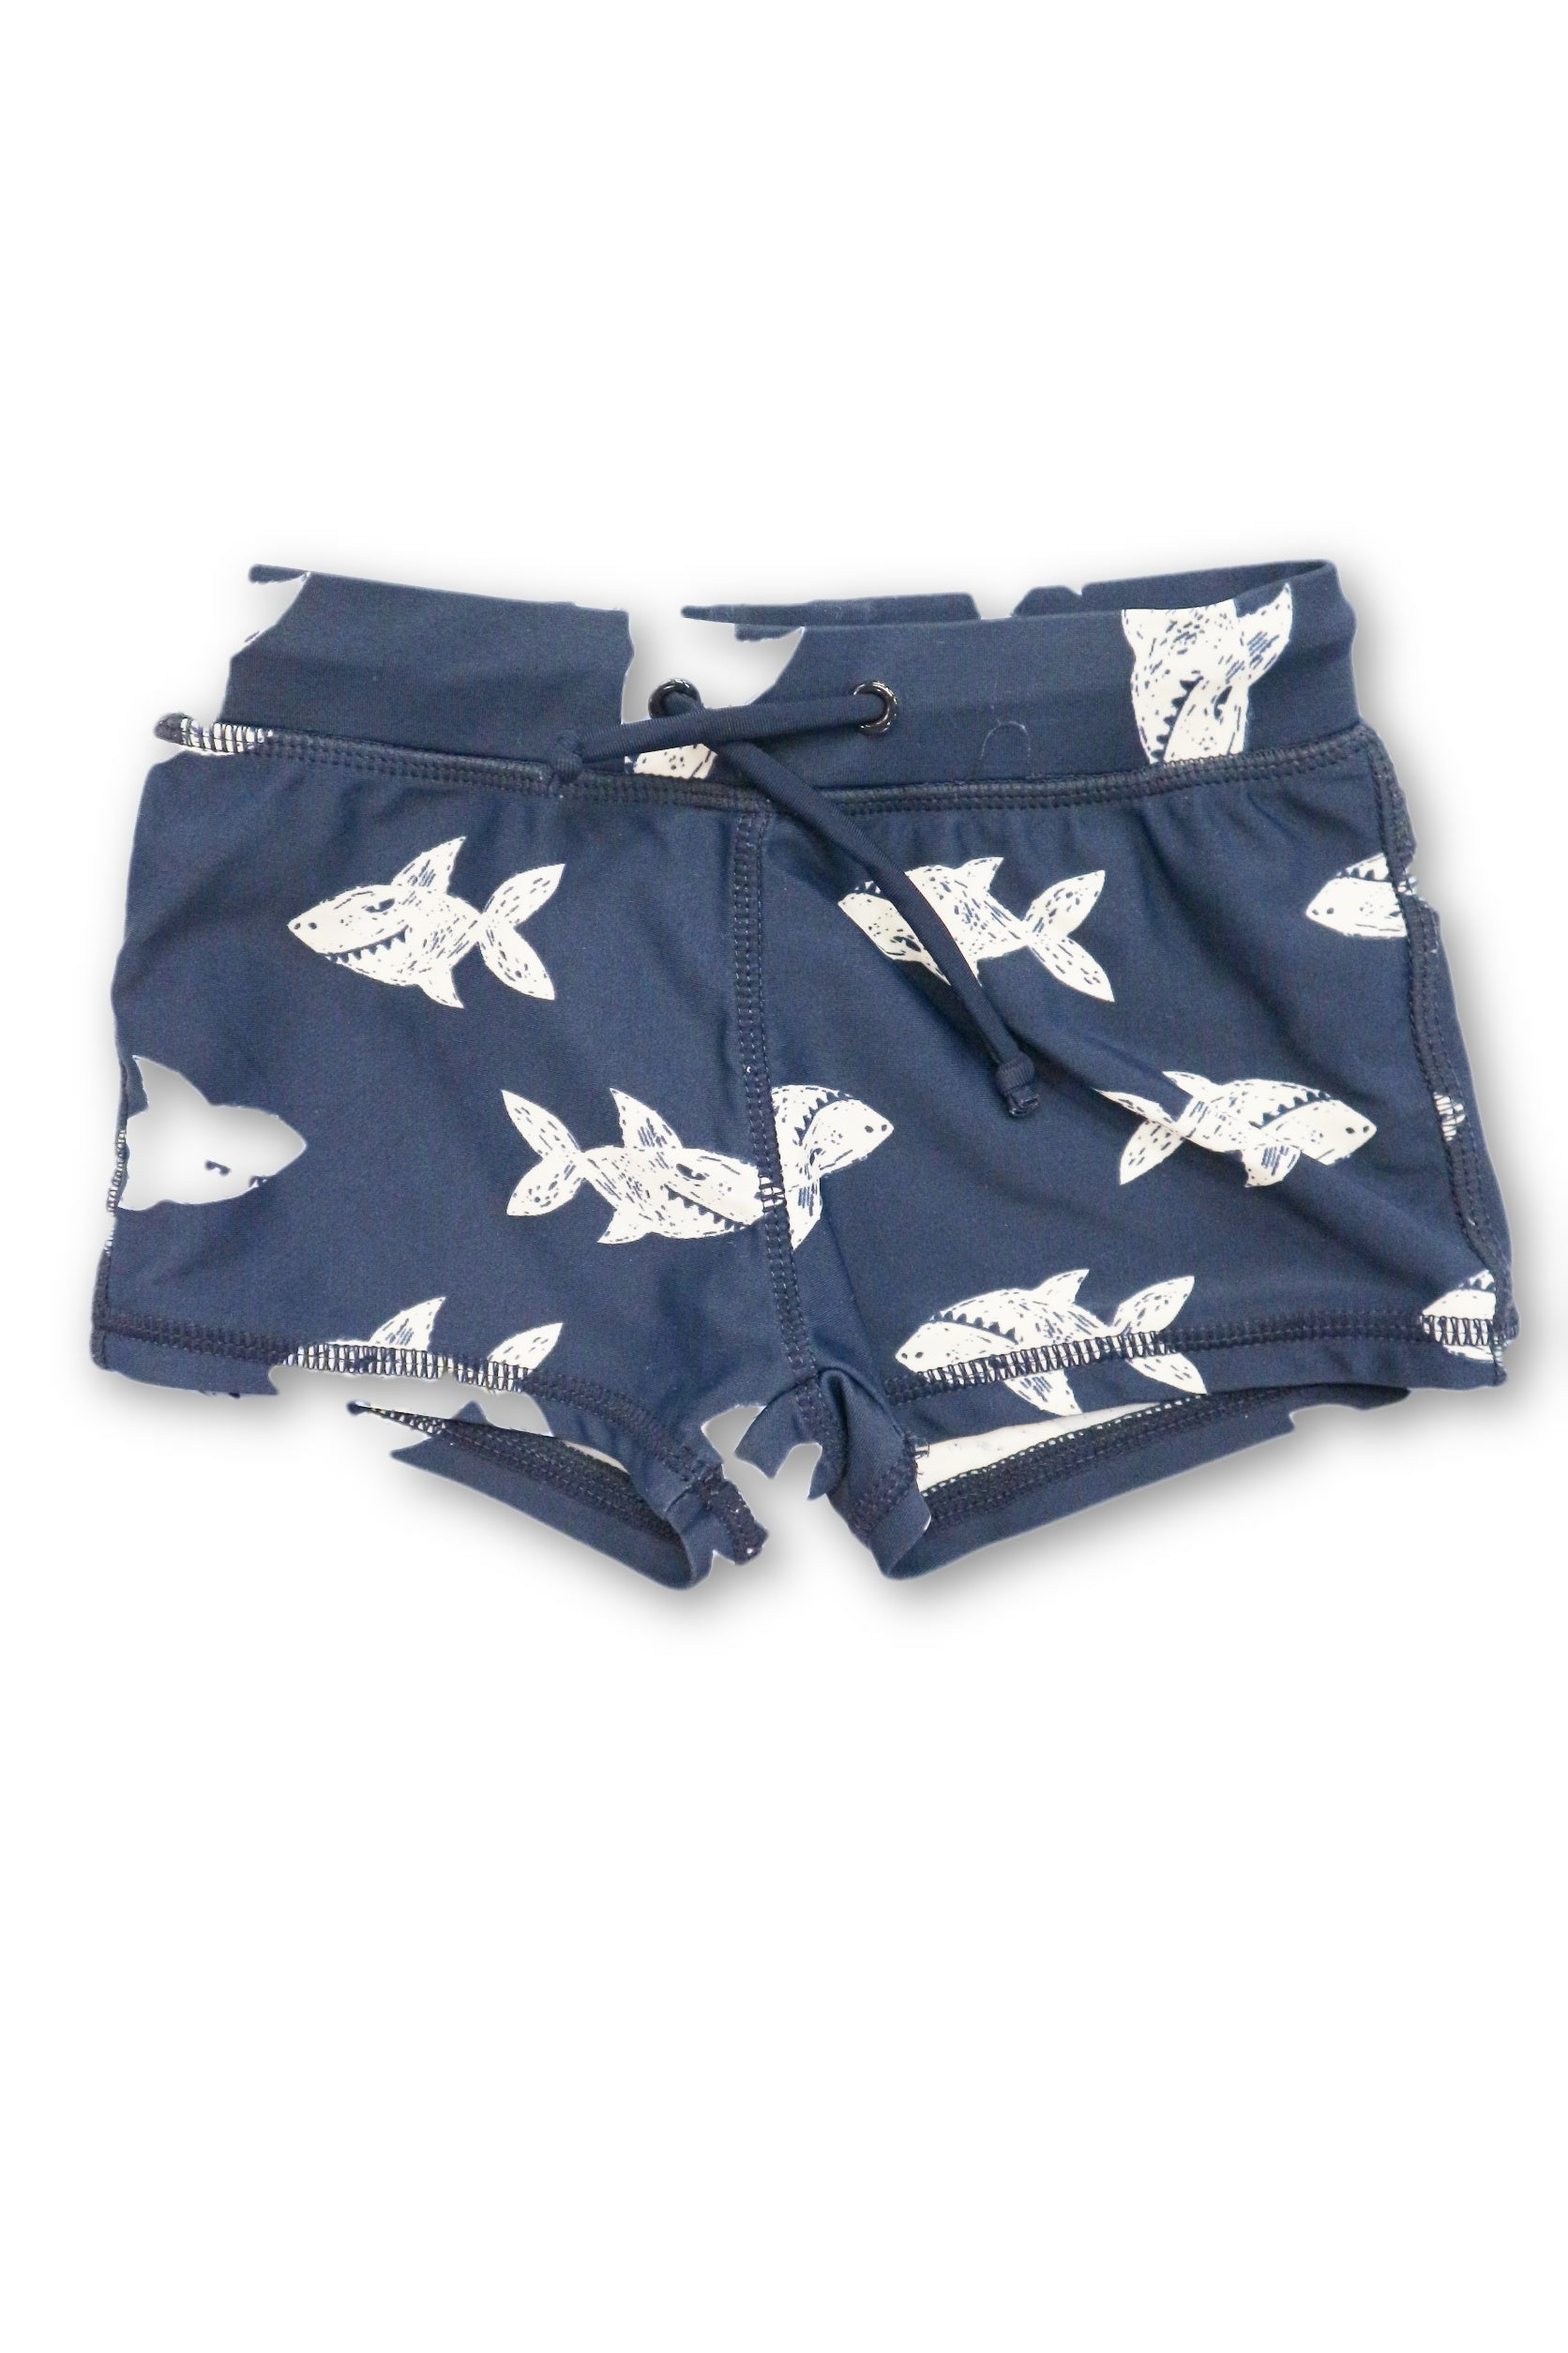 Seed Swim Trunks size 2